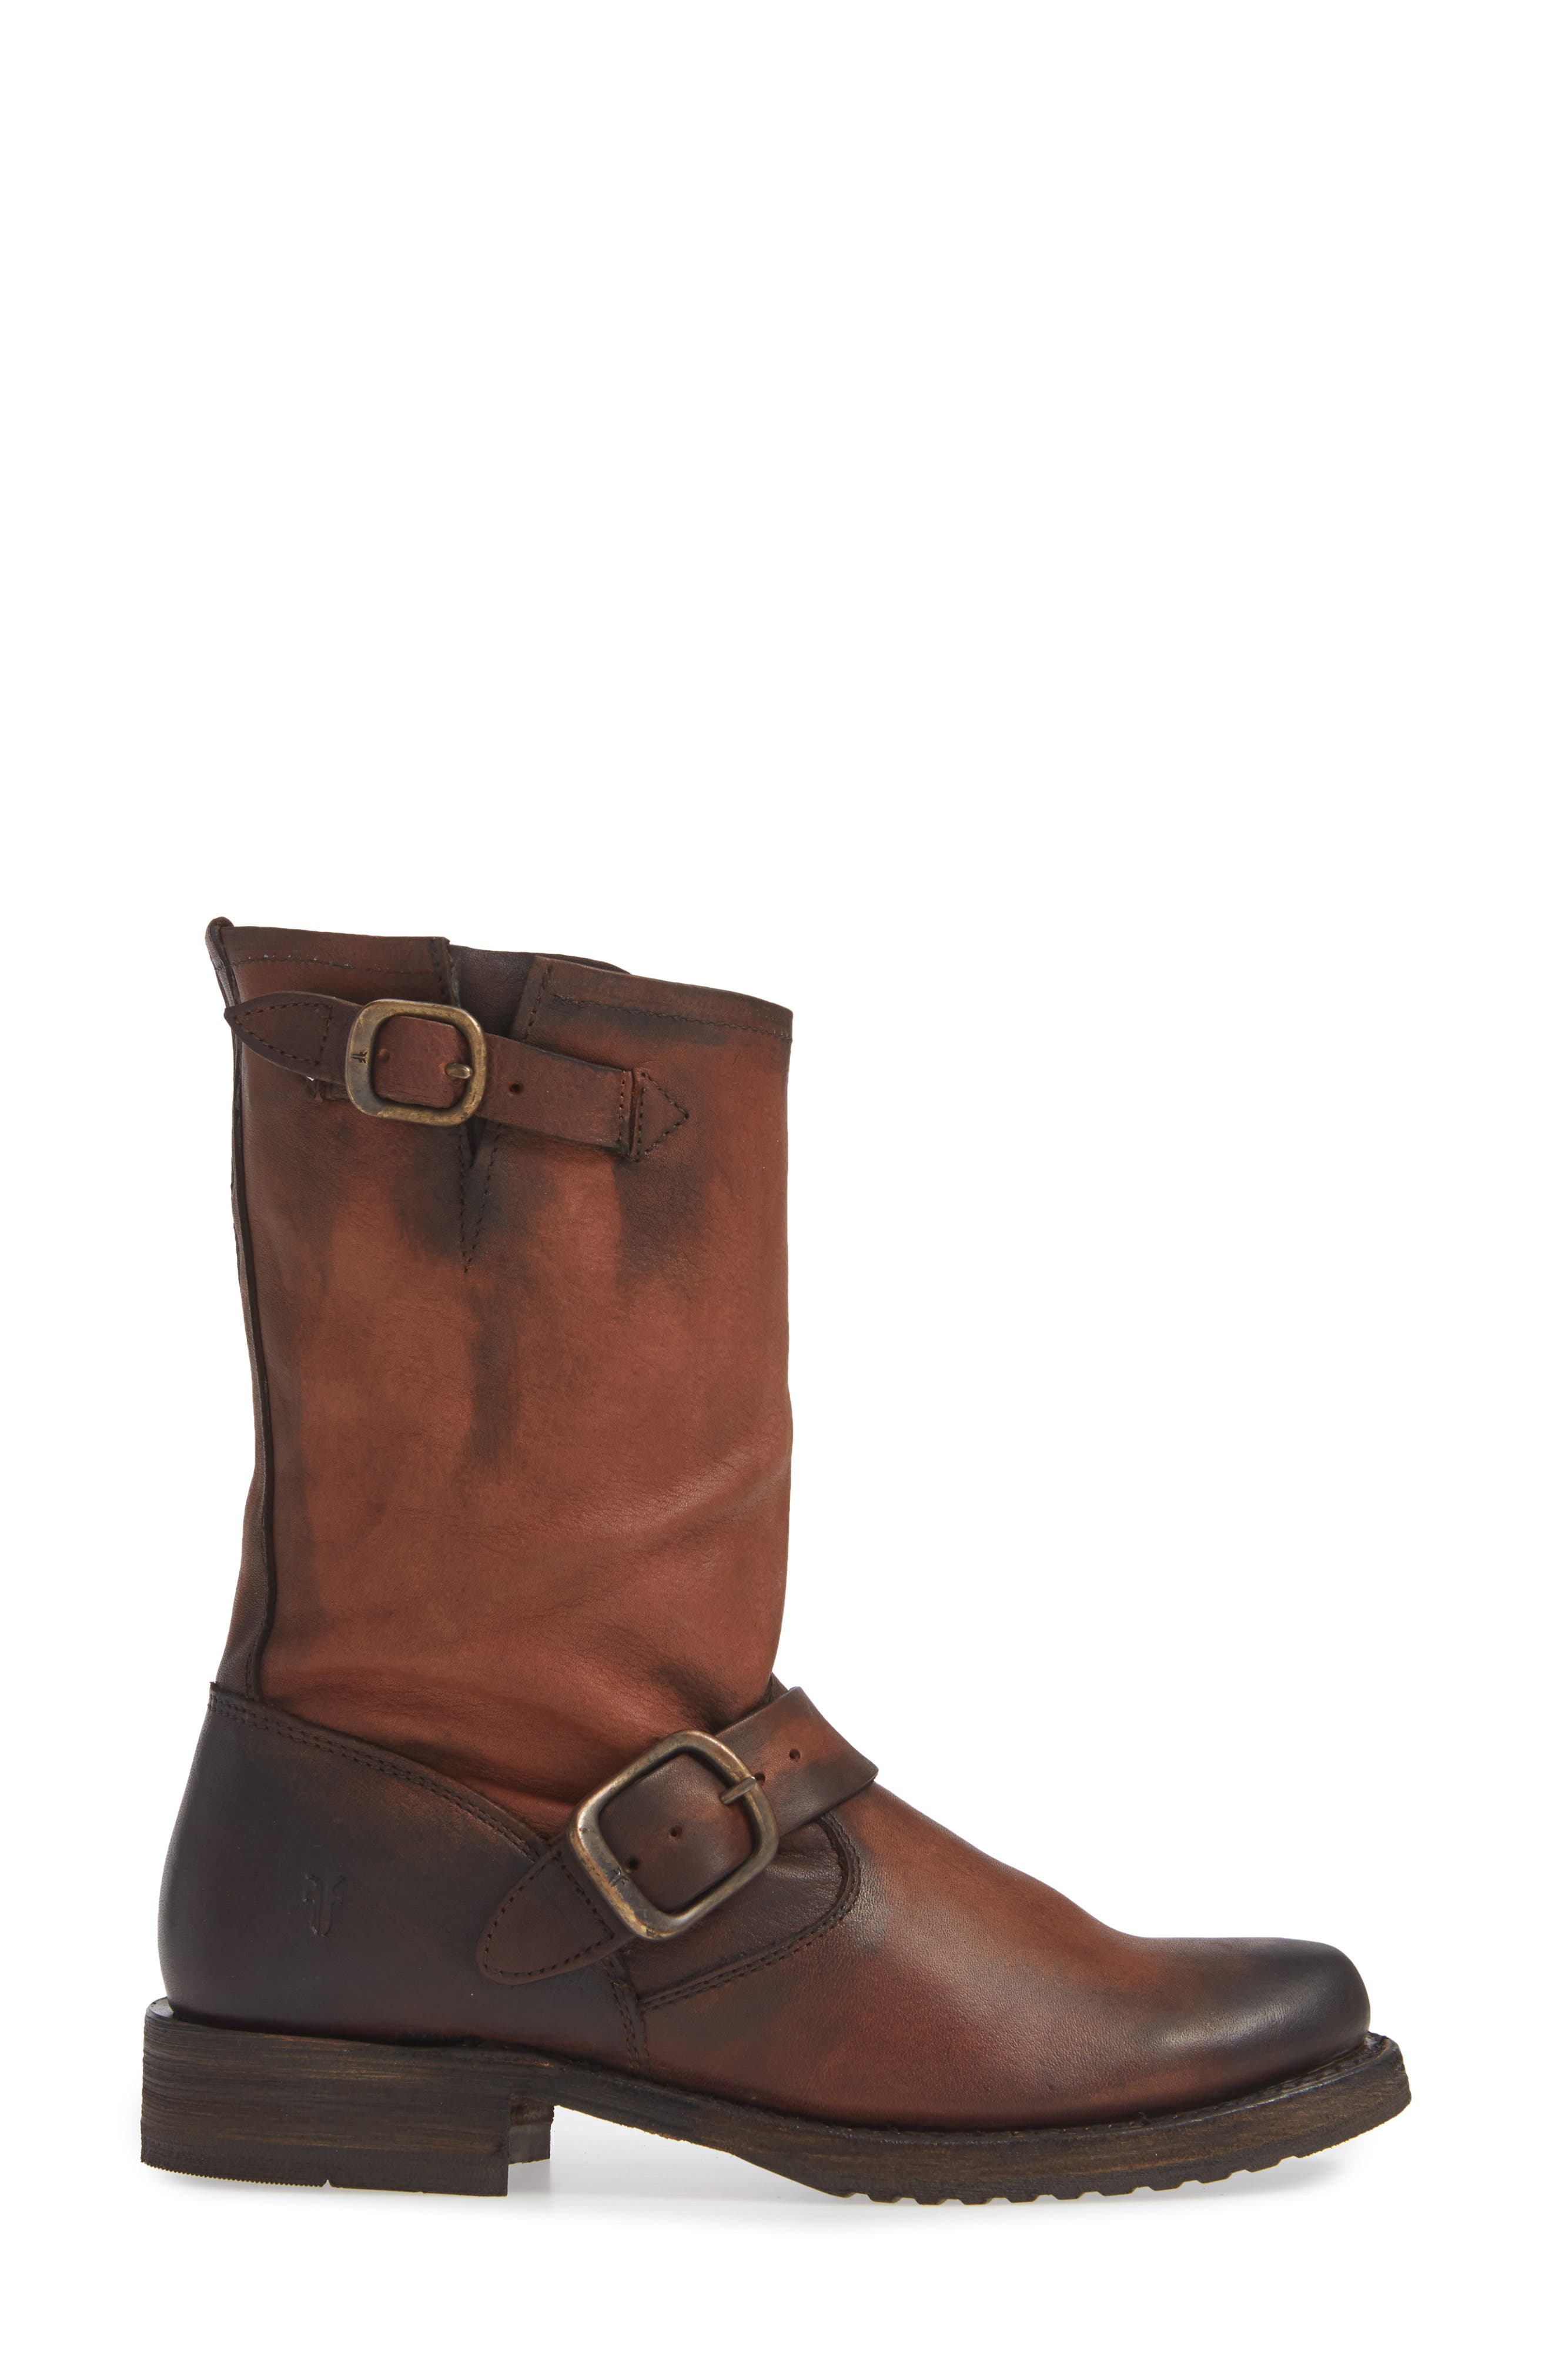 'Veronica' Short Boot,                             Alternate thumbnail 3, color,                             REDWOOD LEATHER